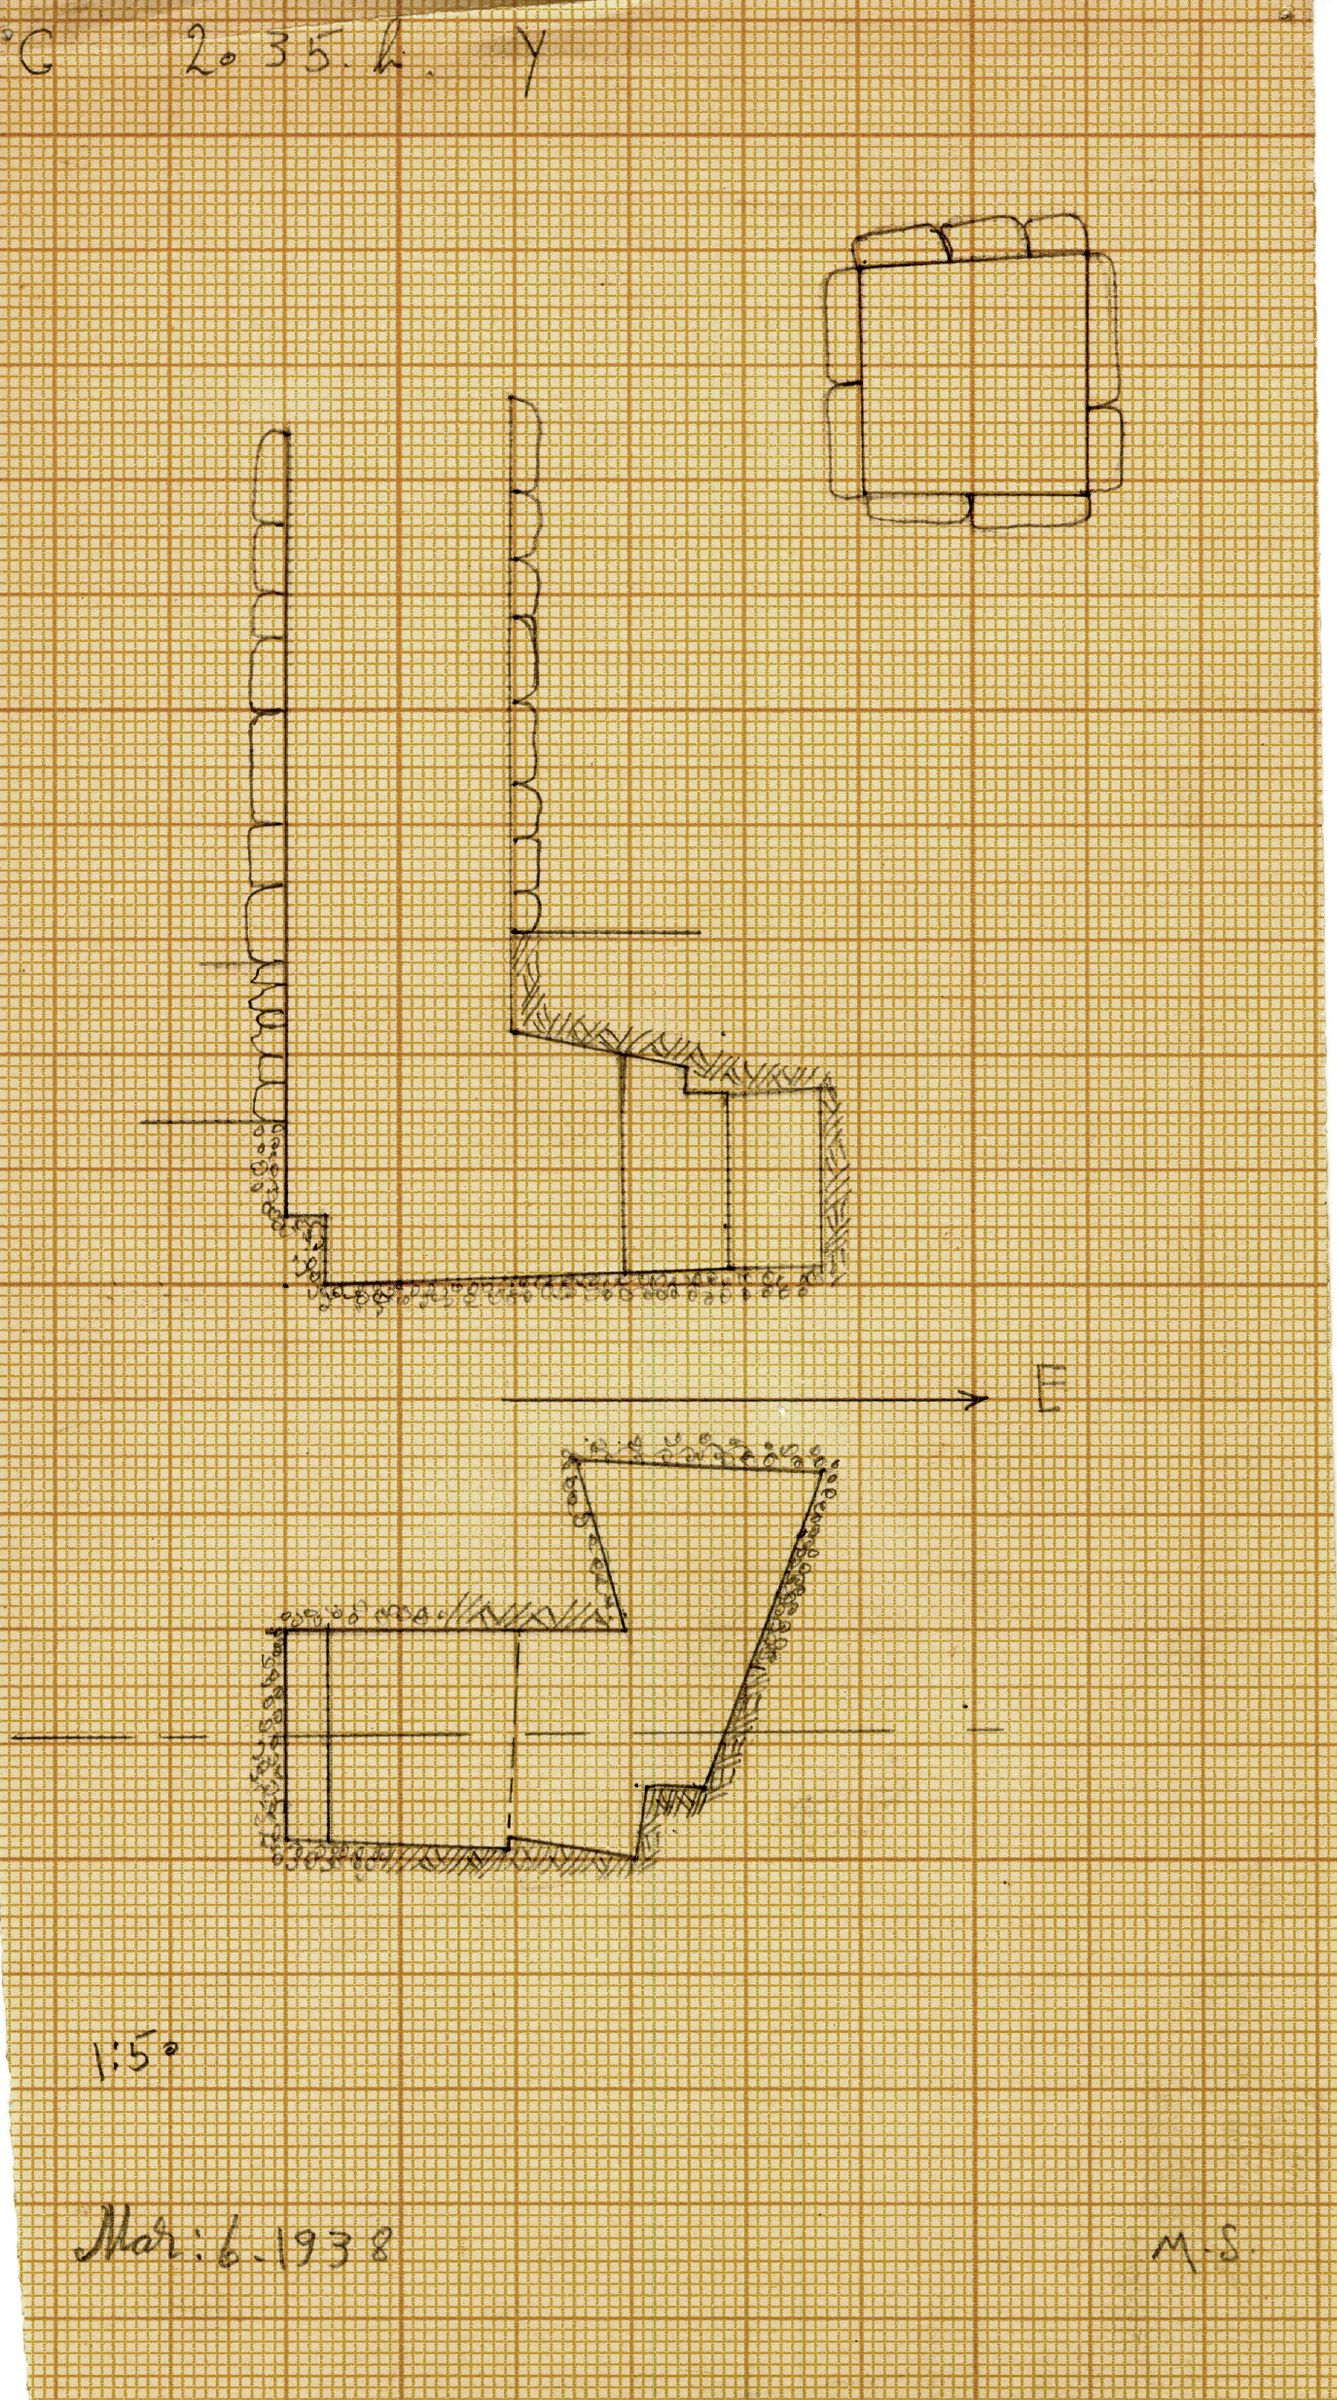 Maps and plans: G 2035b, Shaft Y